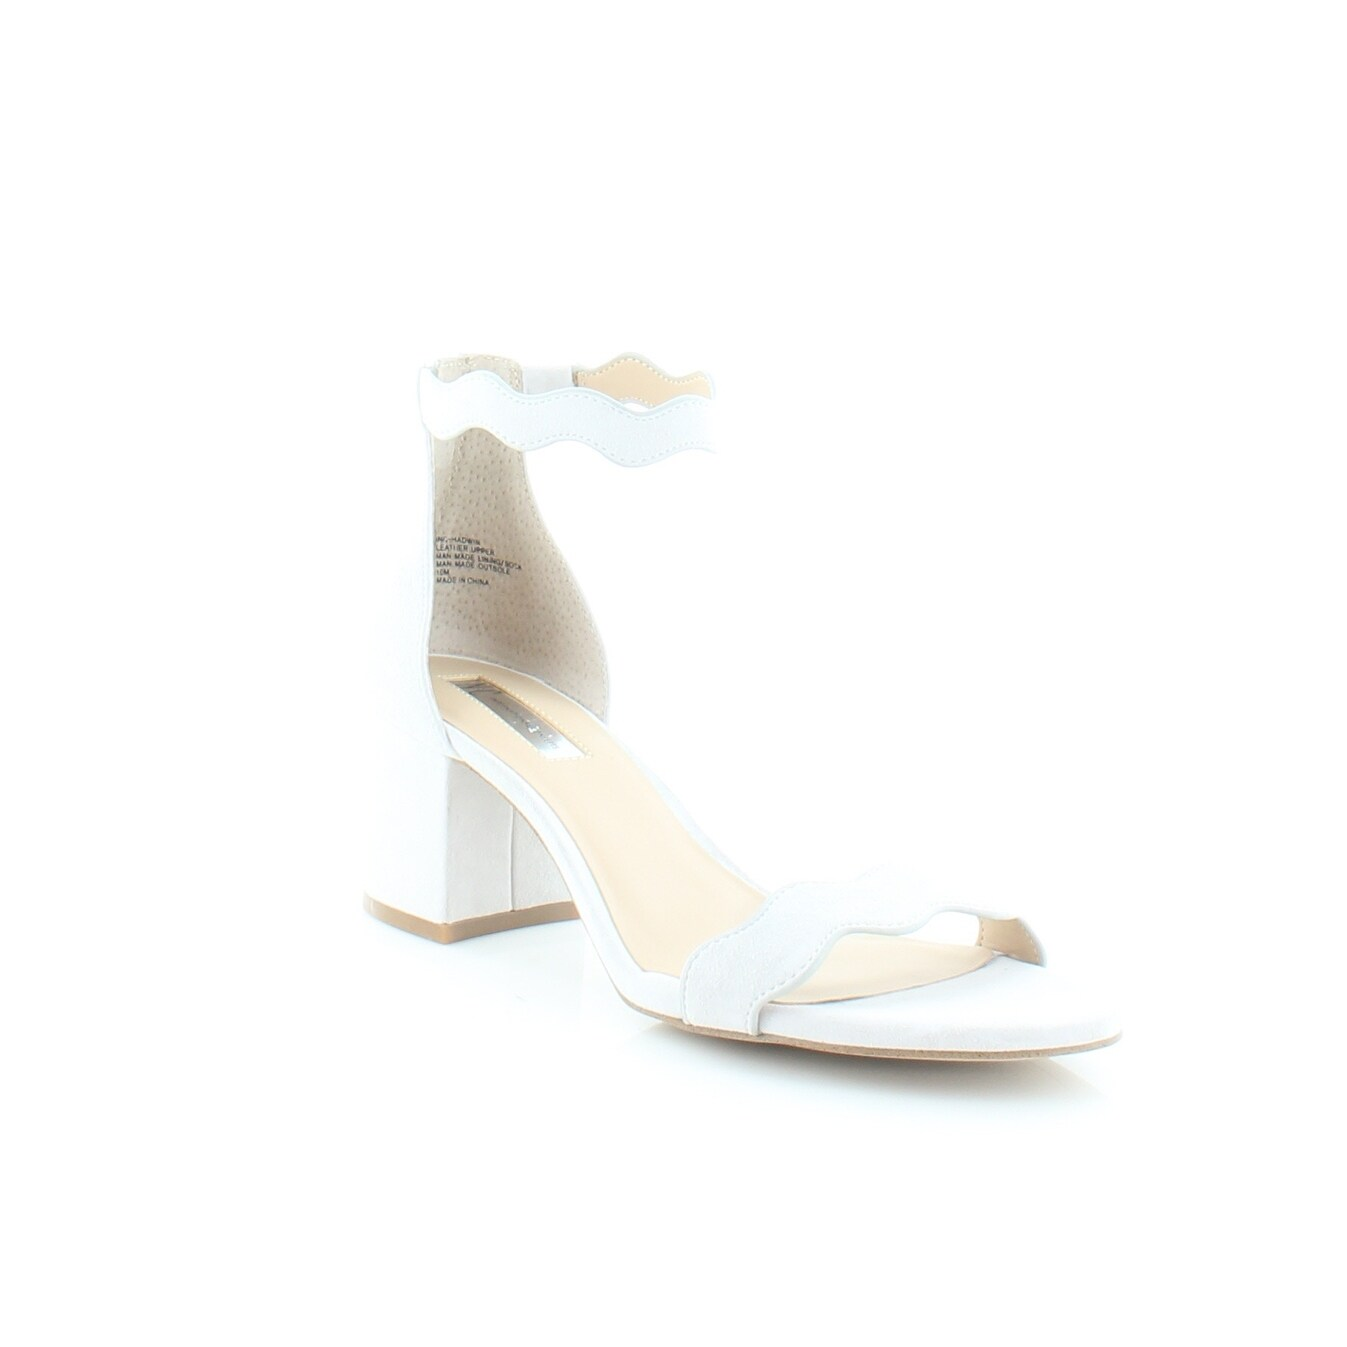 50f60b098ad34 Buy INC INTERNATIONAL CONCEPTS Women's Sandals Online at Overstock ...